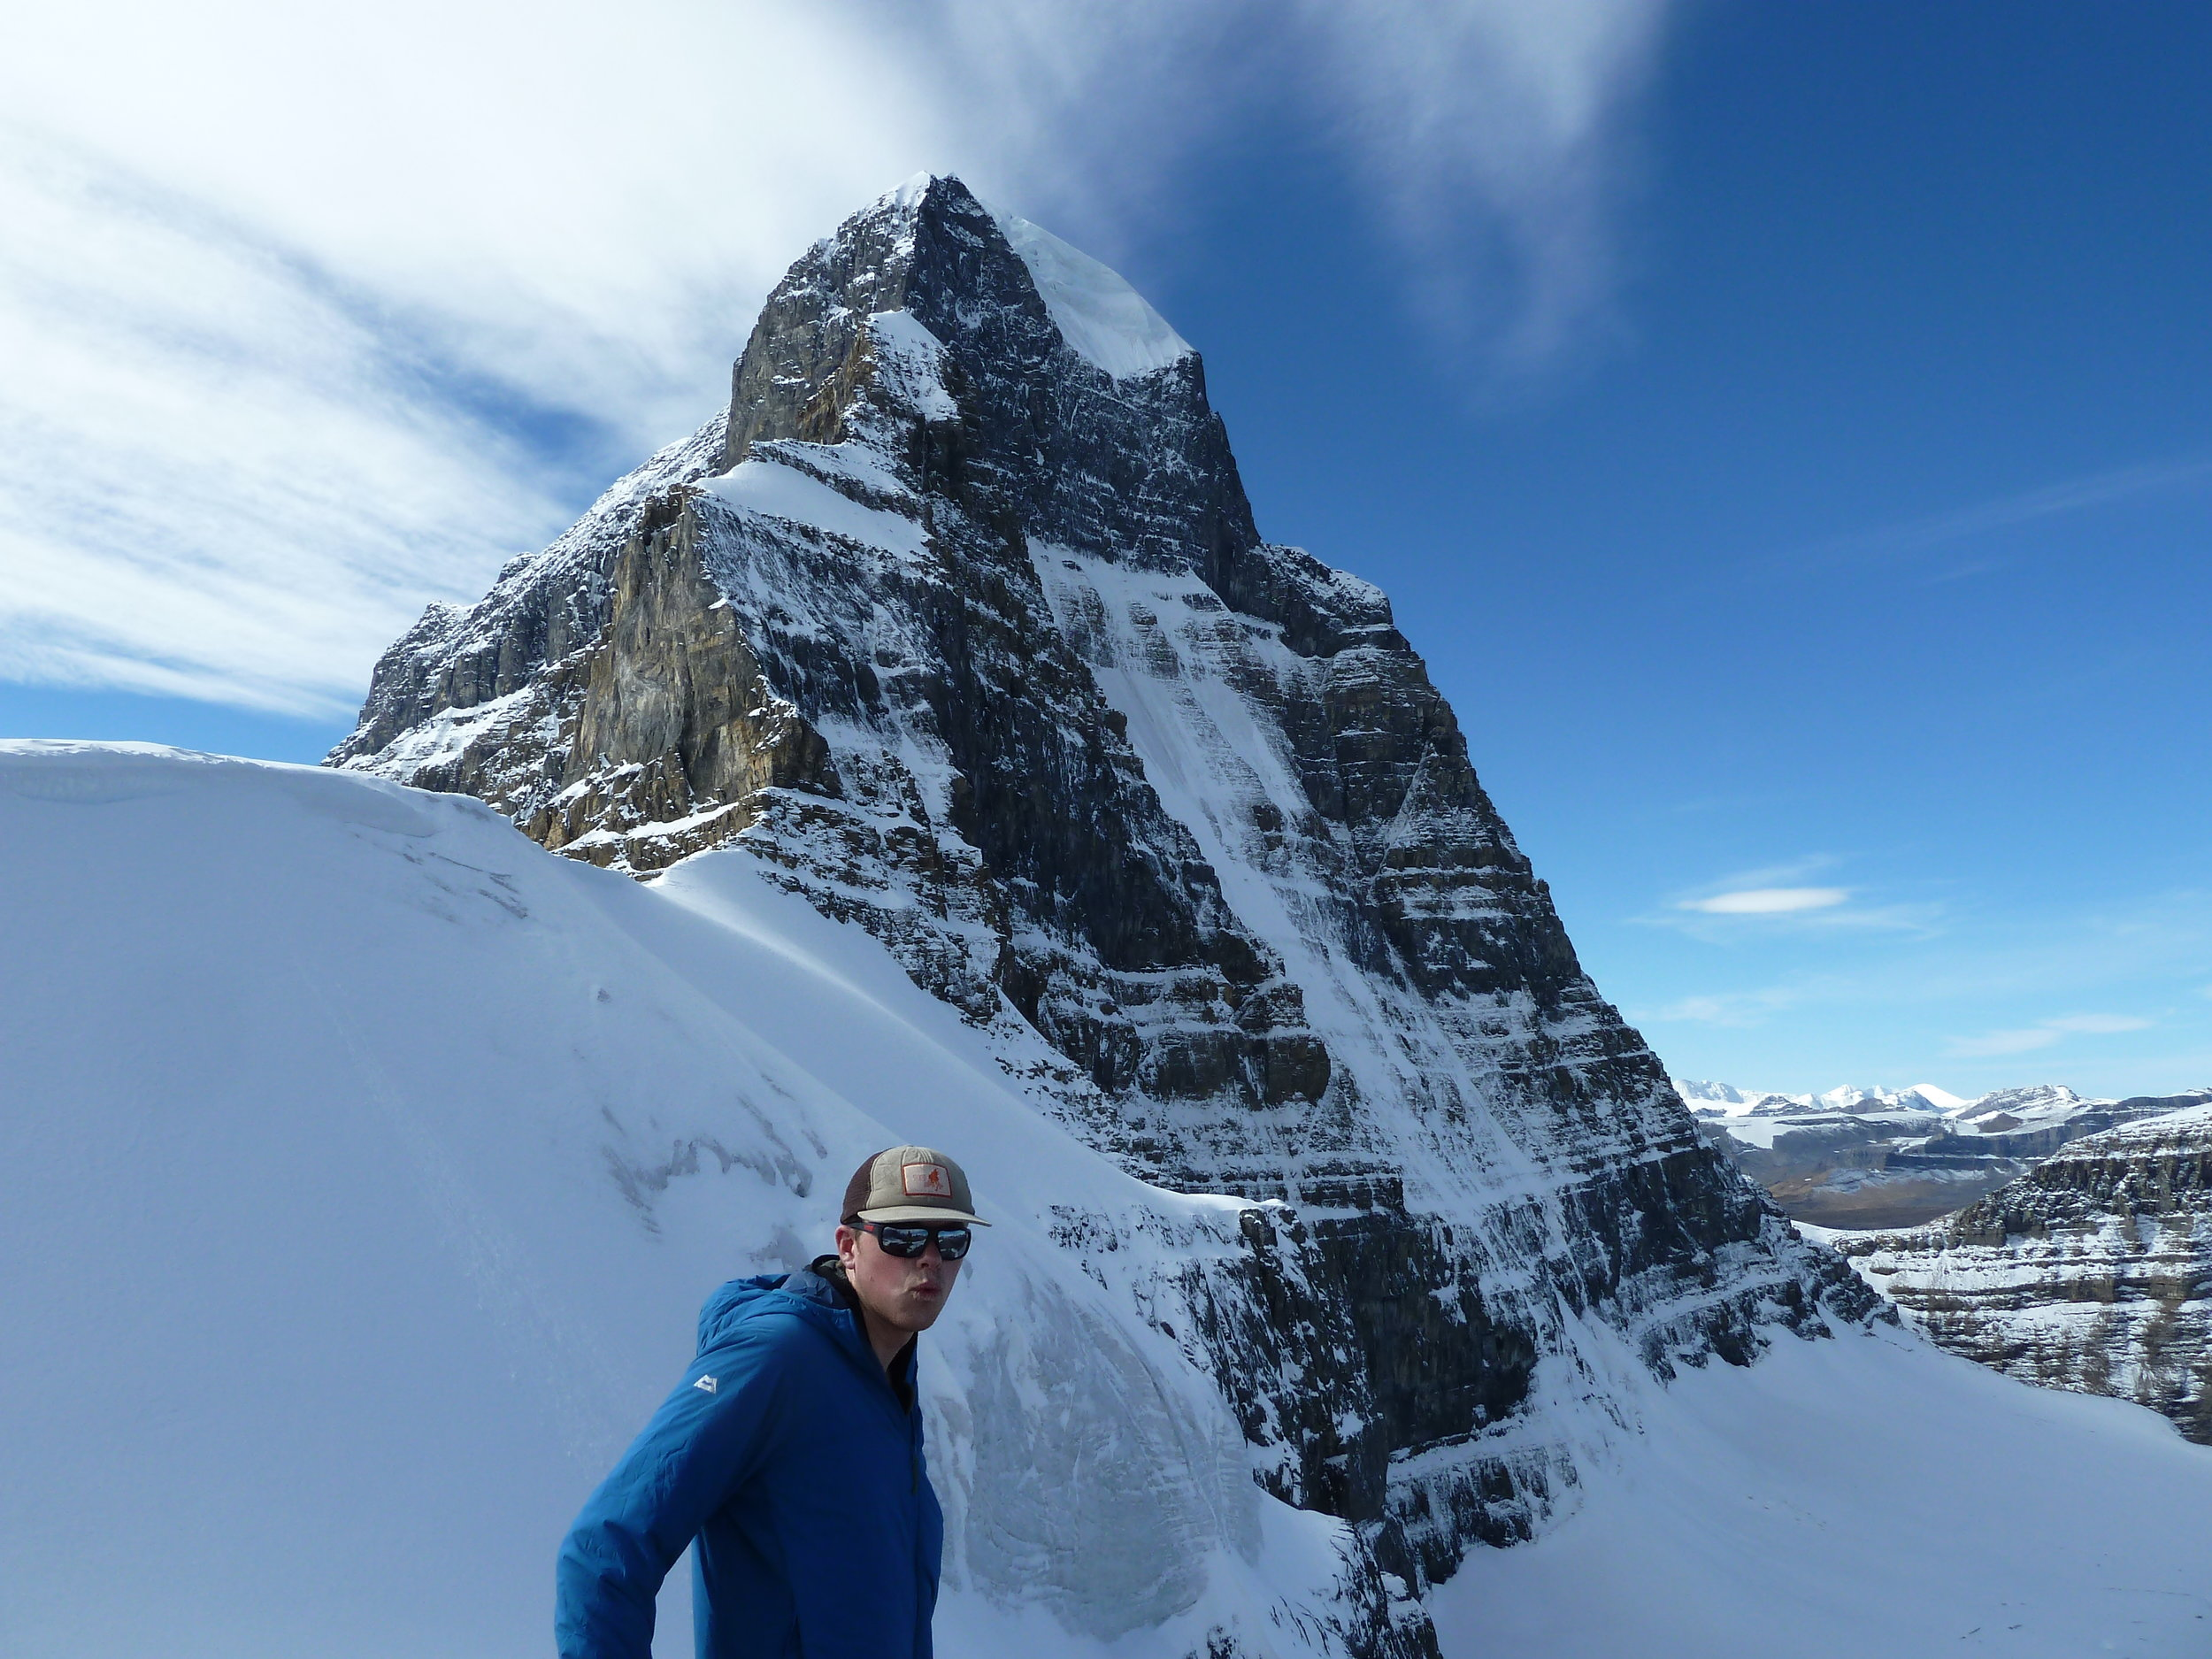 The north face of Mt. Alberta, and a Scotsman.